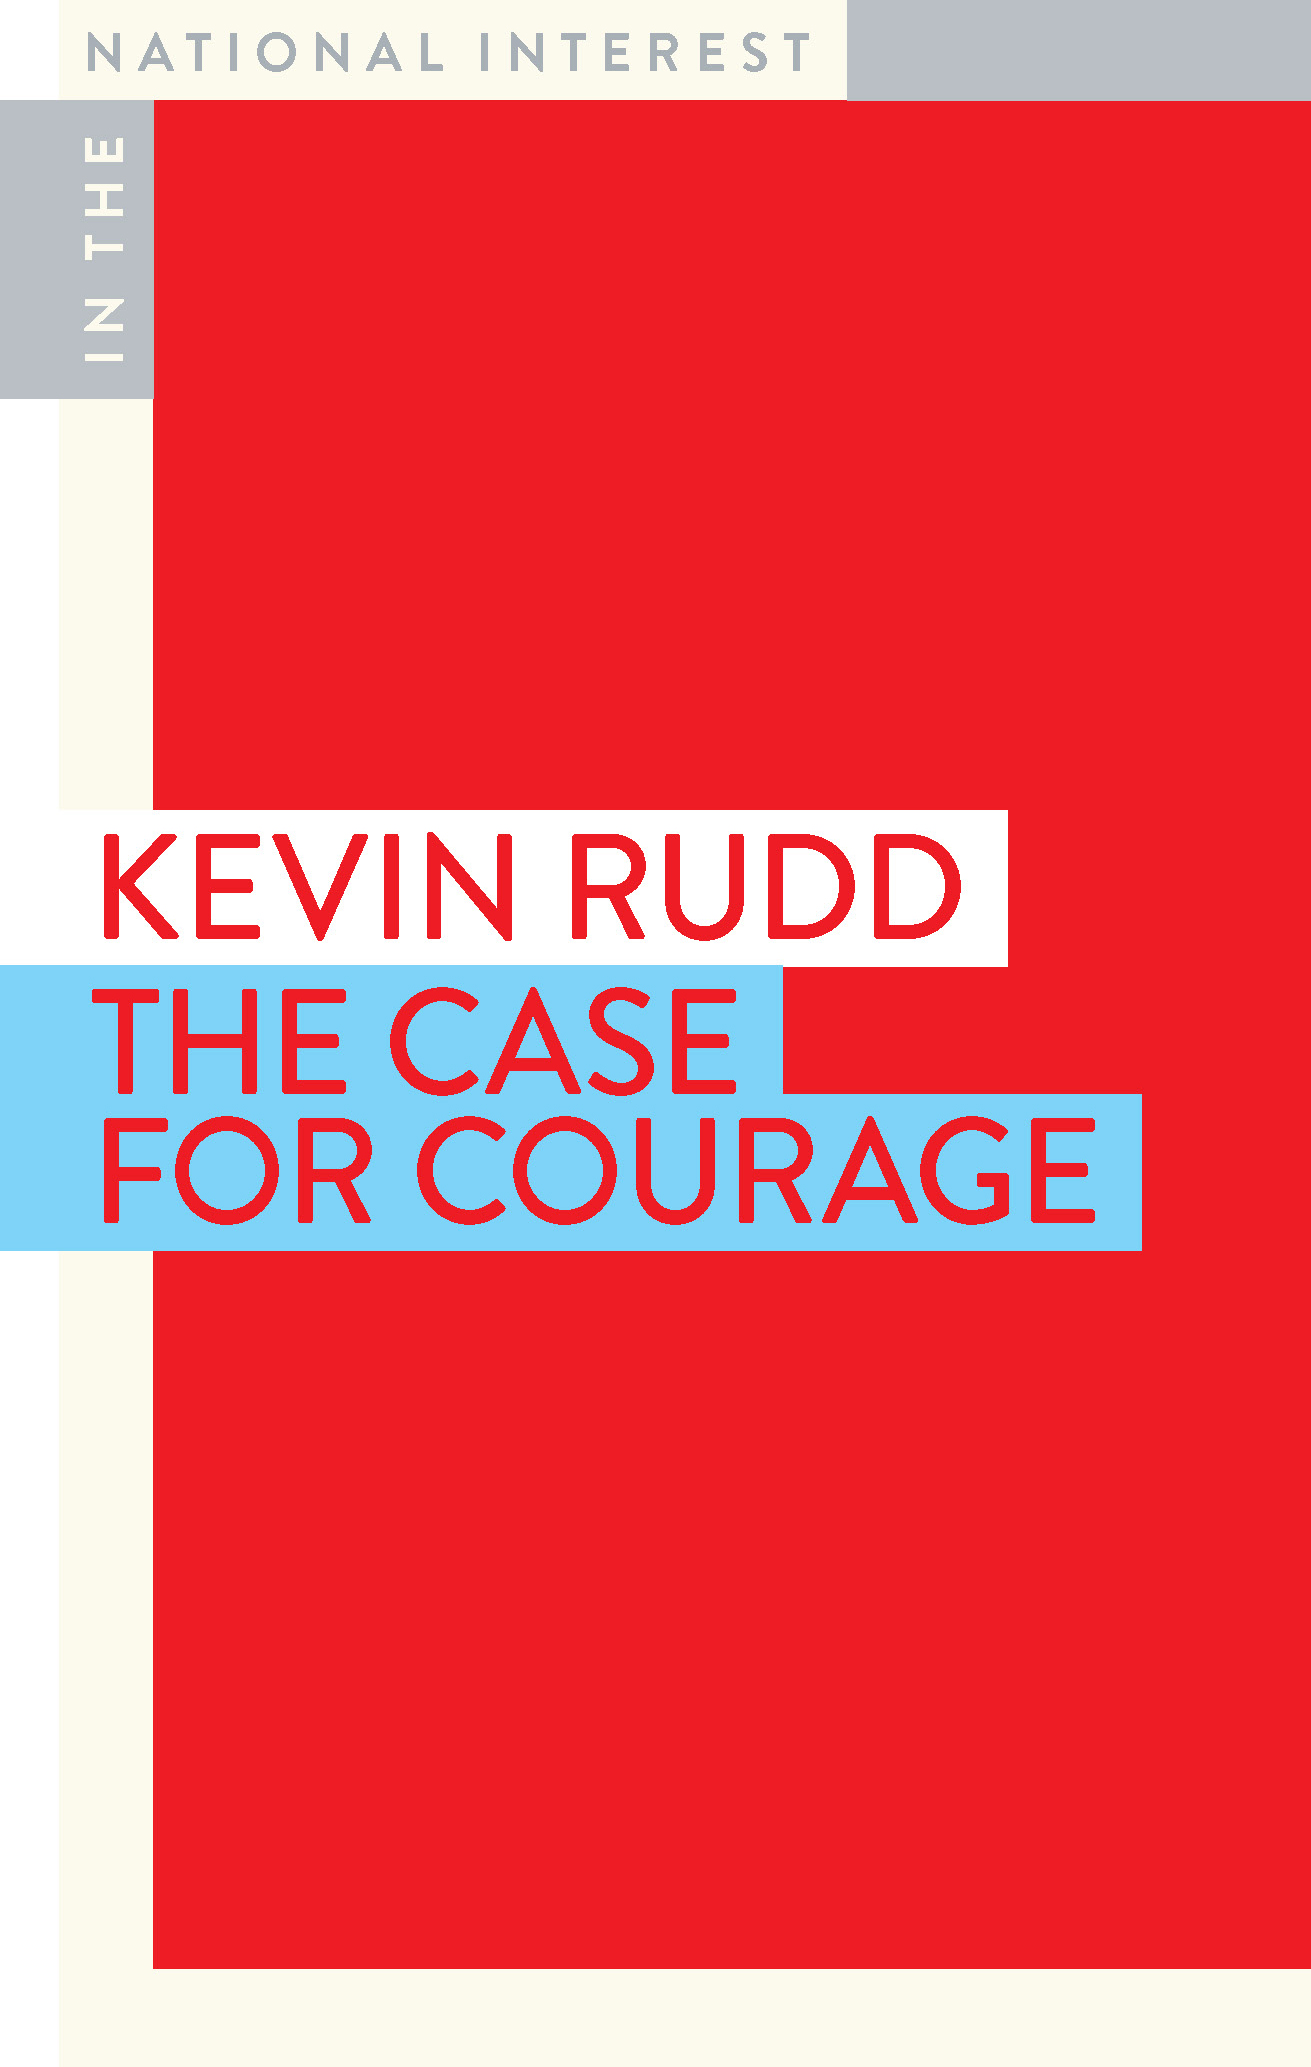 Kevin Rudd book cover